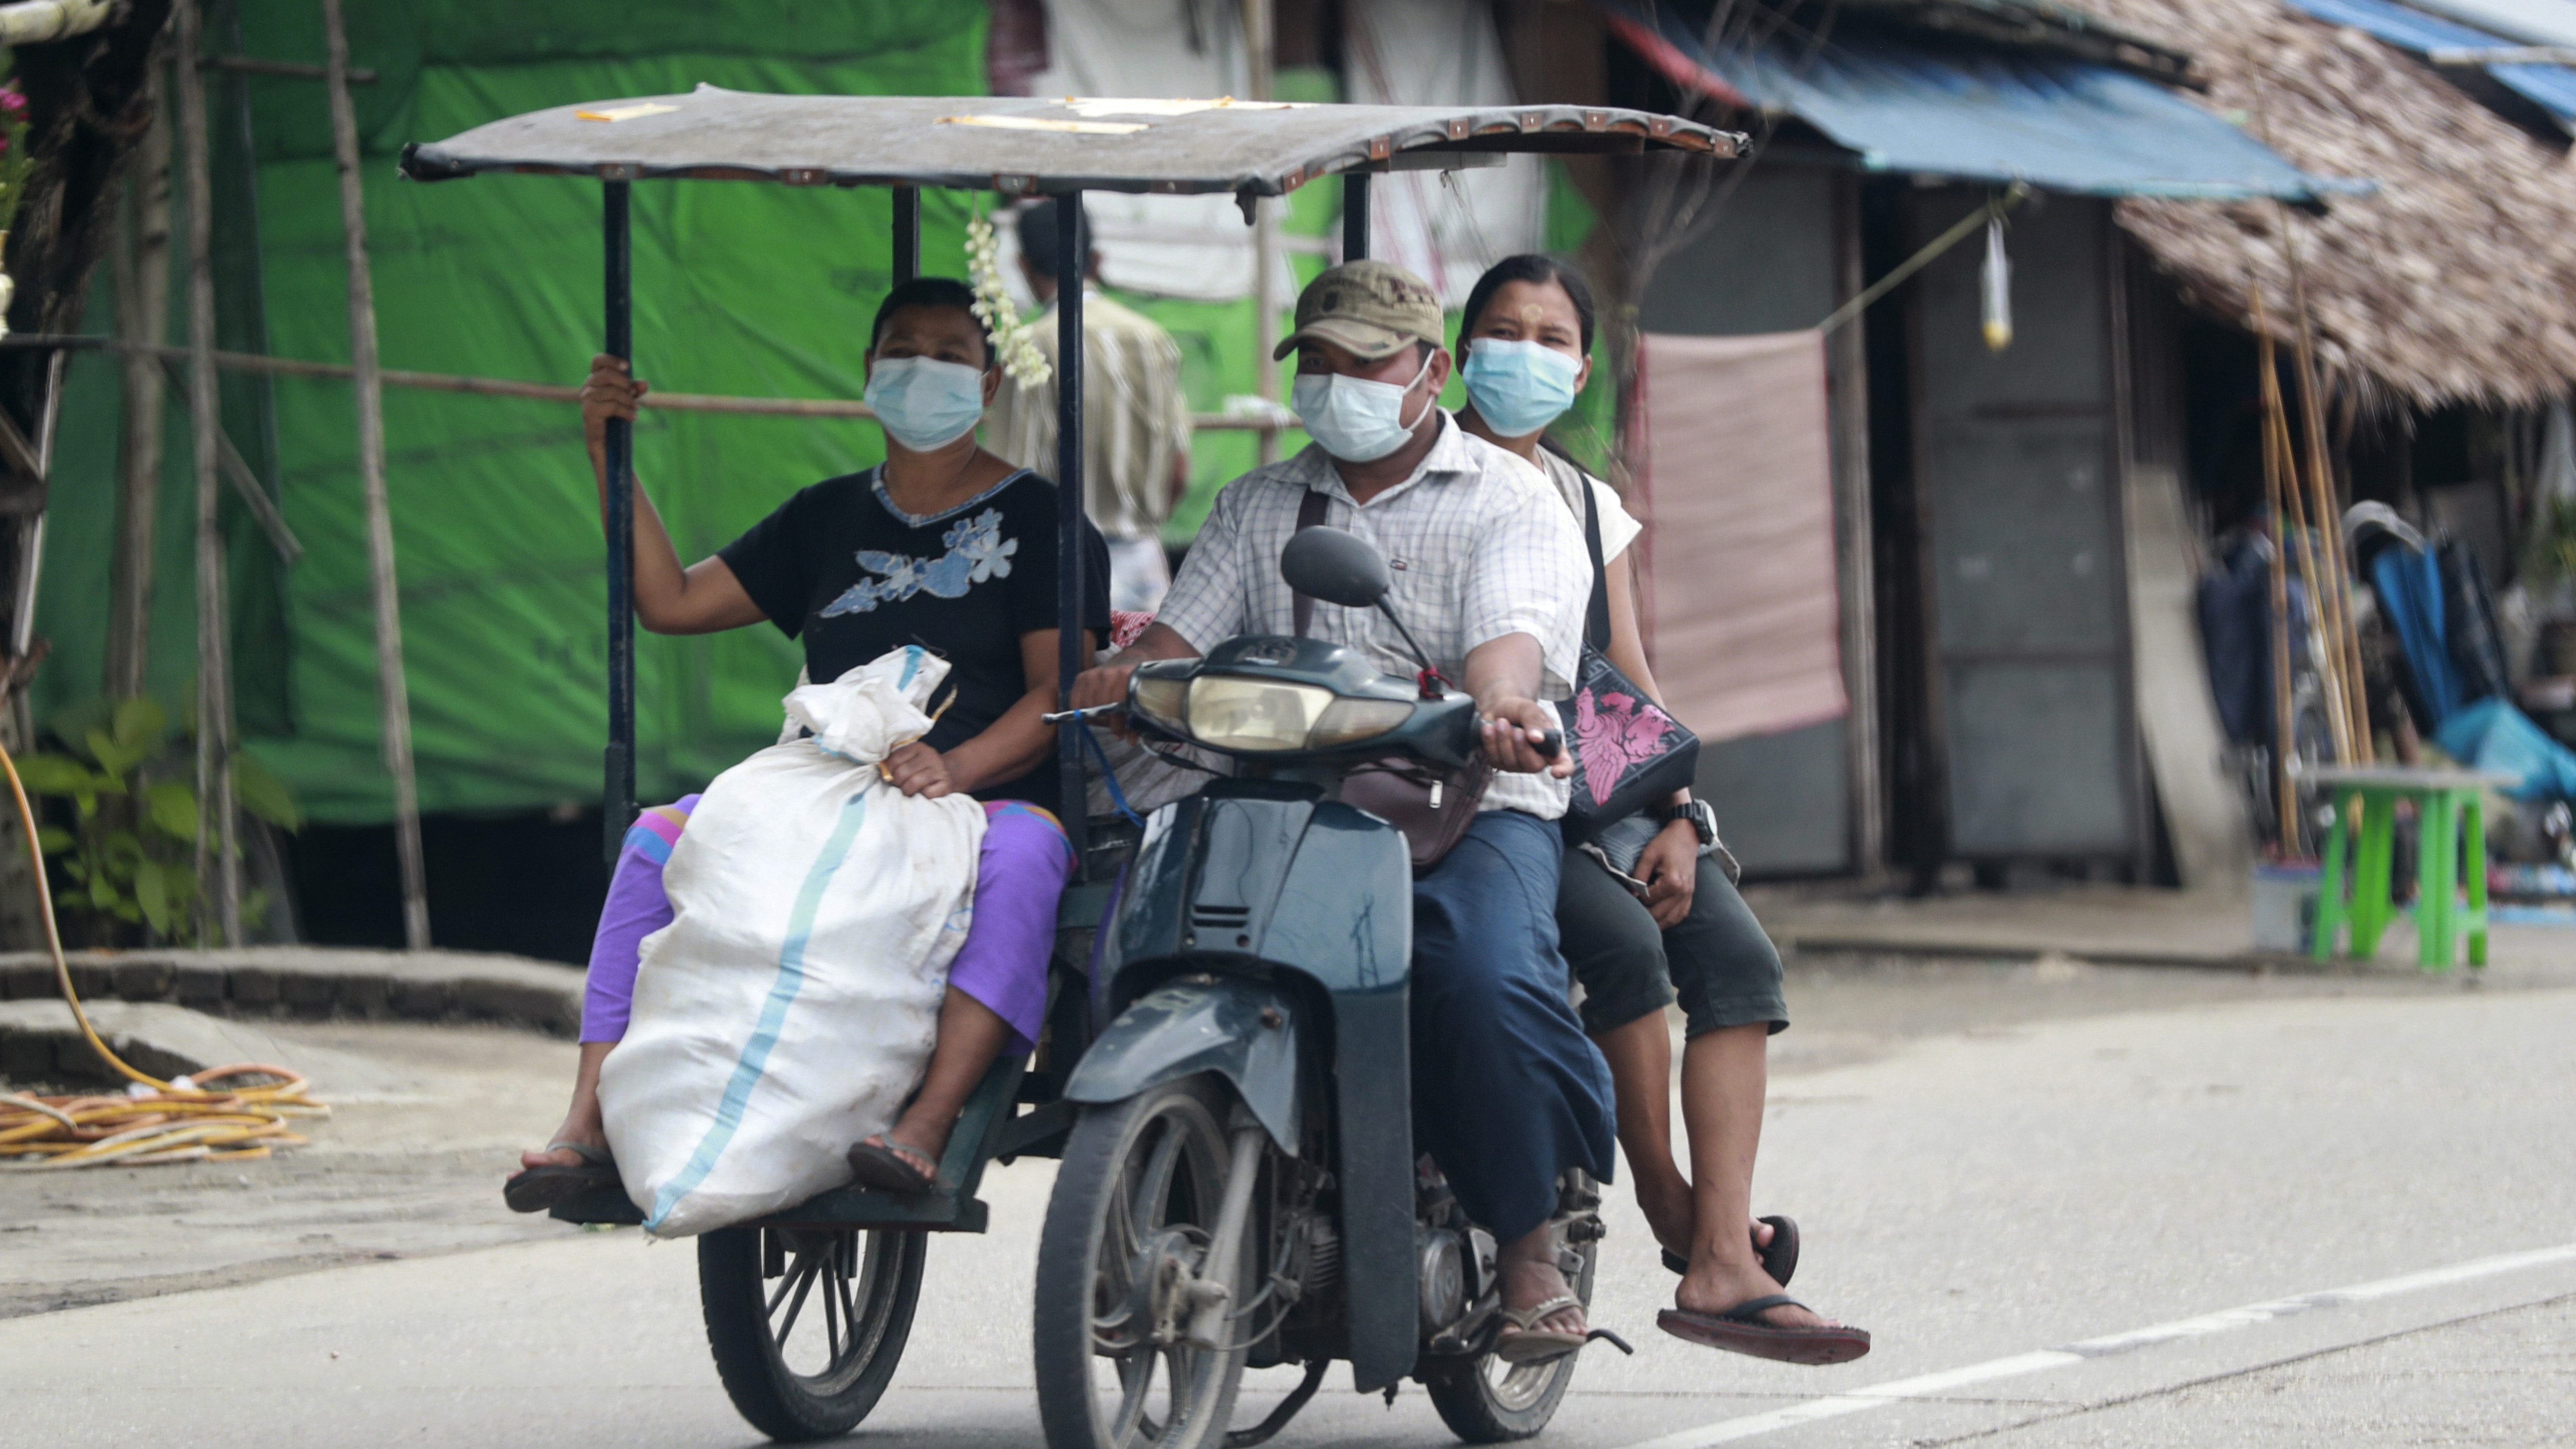 In this July 28, 2021, file photo, people wearing face masks to help curb the spread of the coronavirus ride a tricycle to transport goods in Shwe Pyi Thar township in Yangon, Myanmar.